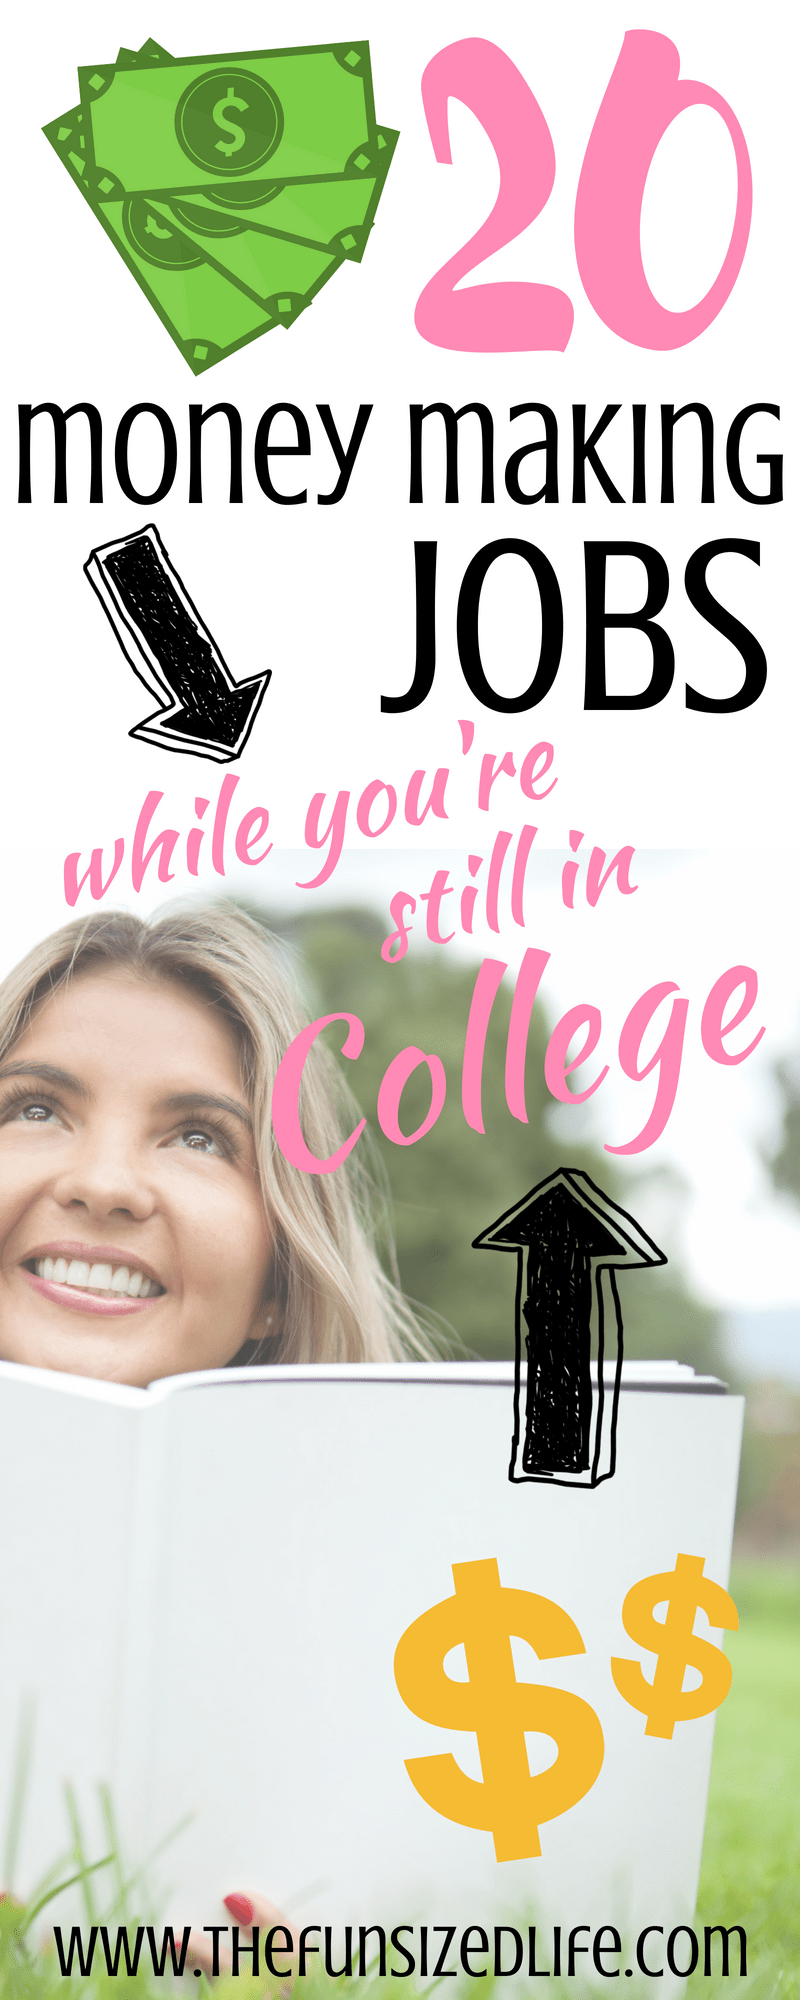 There are so many great college jobs I never even thought of! Making money while you earn your degree doesn't have to be that hard! #makemoney #earnmoney #extracash #degree #collegedegree #parttimejob #sidehustle